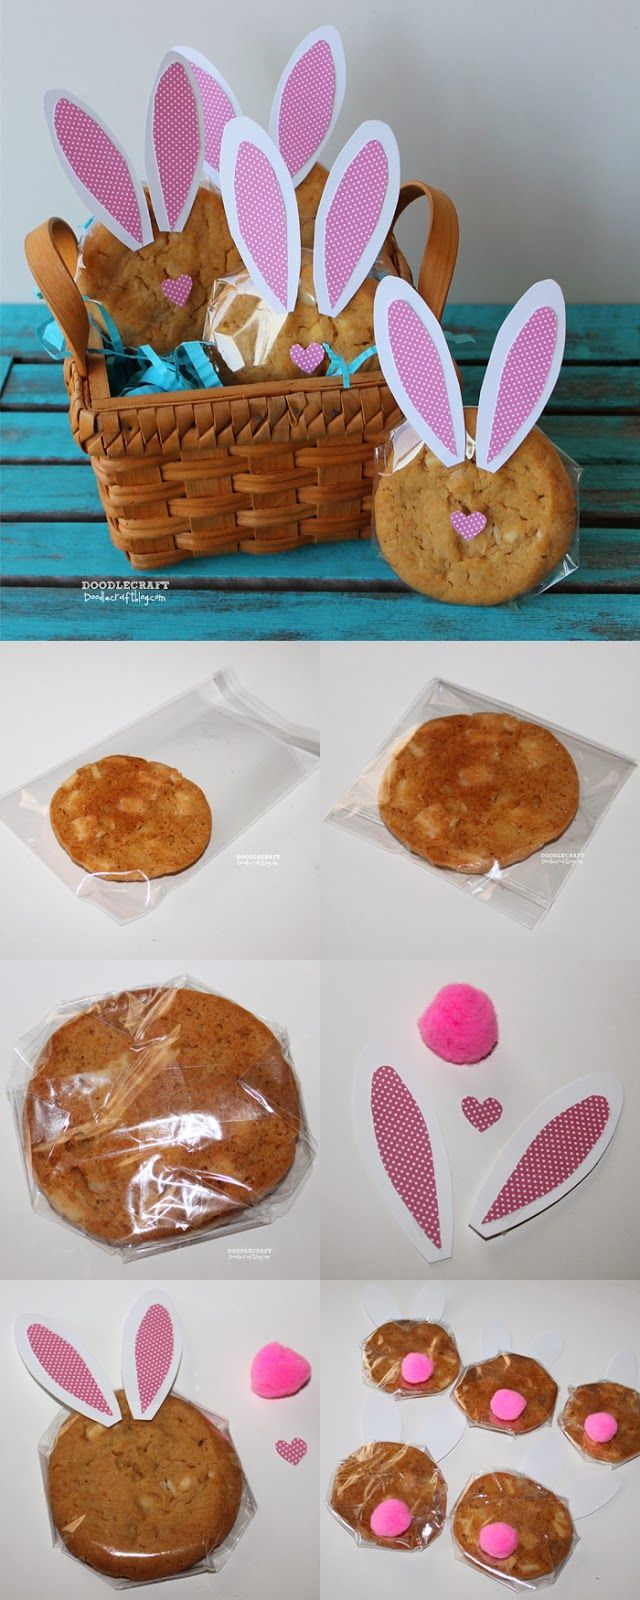 Best 25 easter gift ideas on pinterest bunny bags diy gift cookies bunny ear cutouts a basket cellophane and a fuzzy tail and youre all set for easter thanks doodlecraft negle